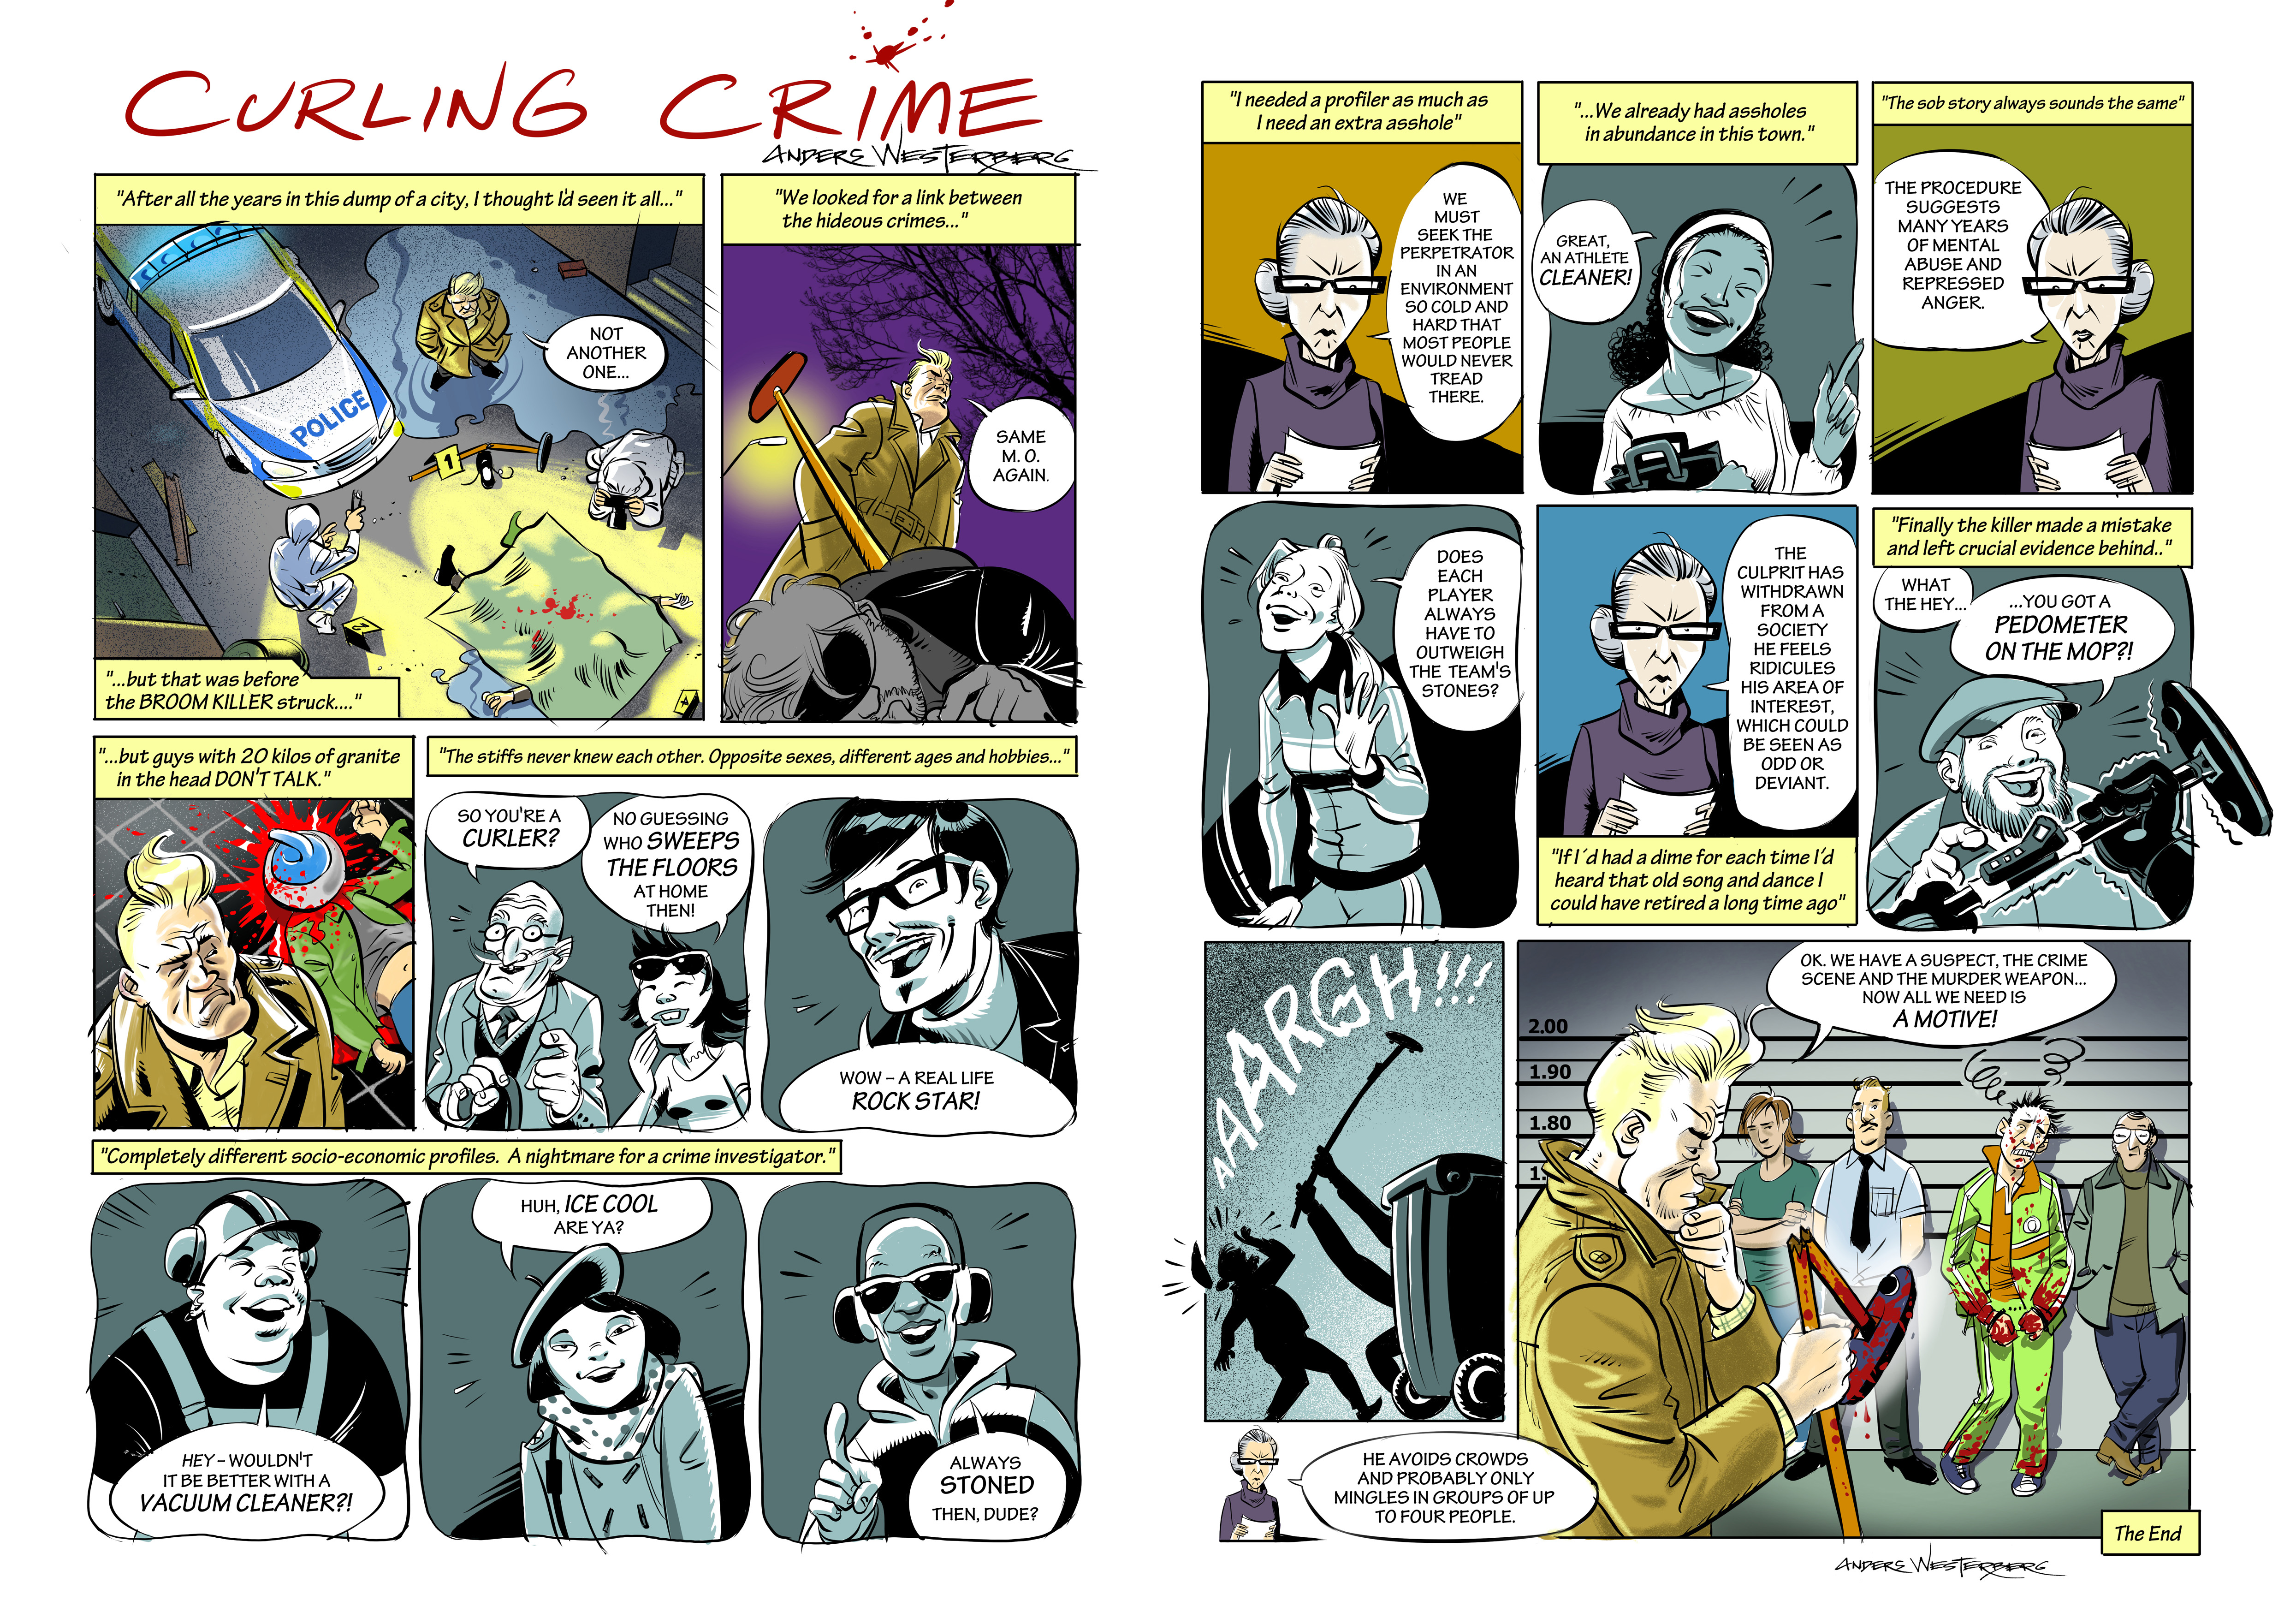 Anders Westerberg | The first ever curling noir crime comic. For The Curling News (Canada). Since illustrating and curling are my two fortes, why not bring them together?